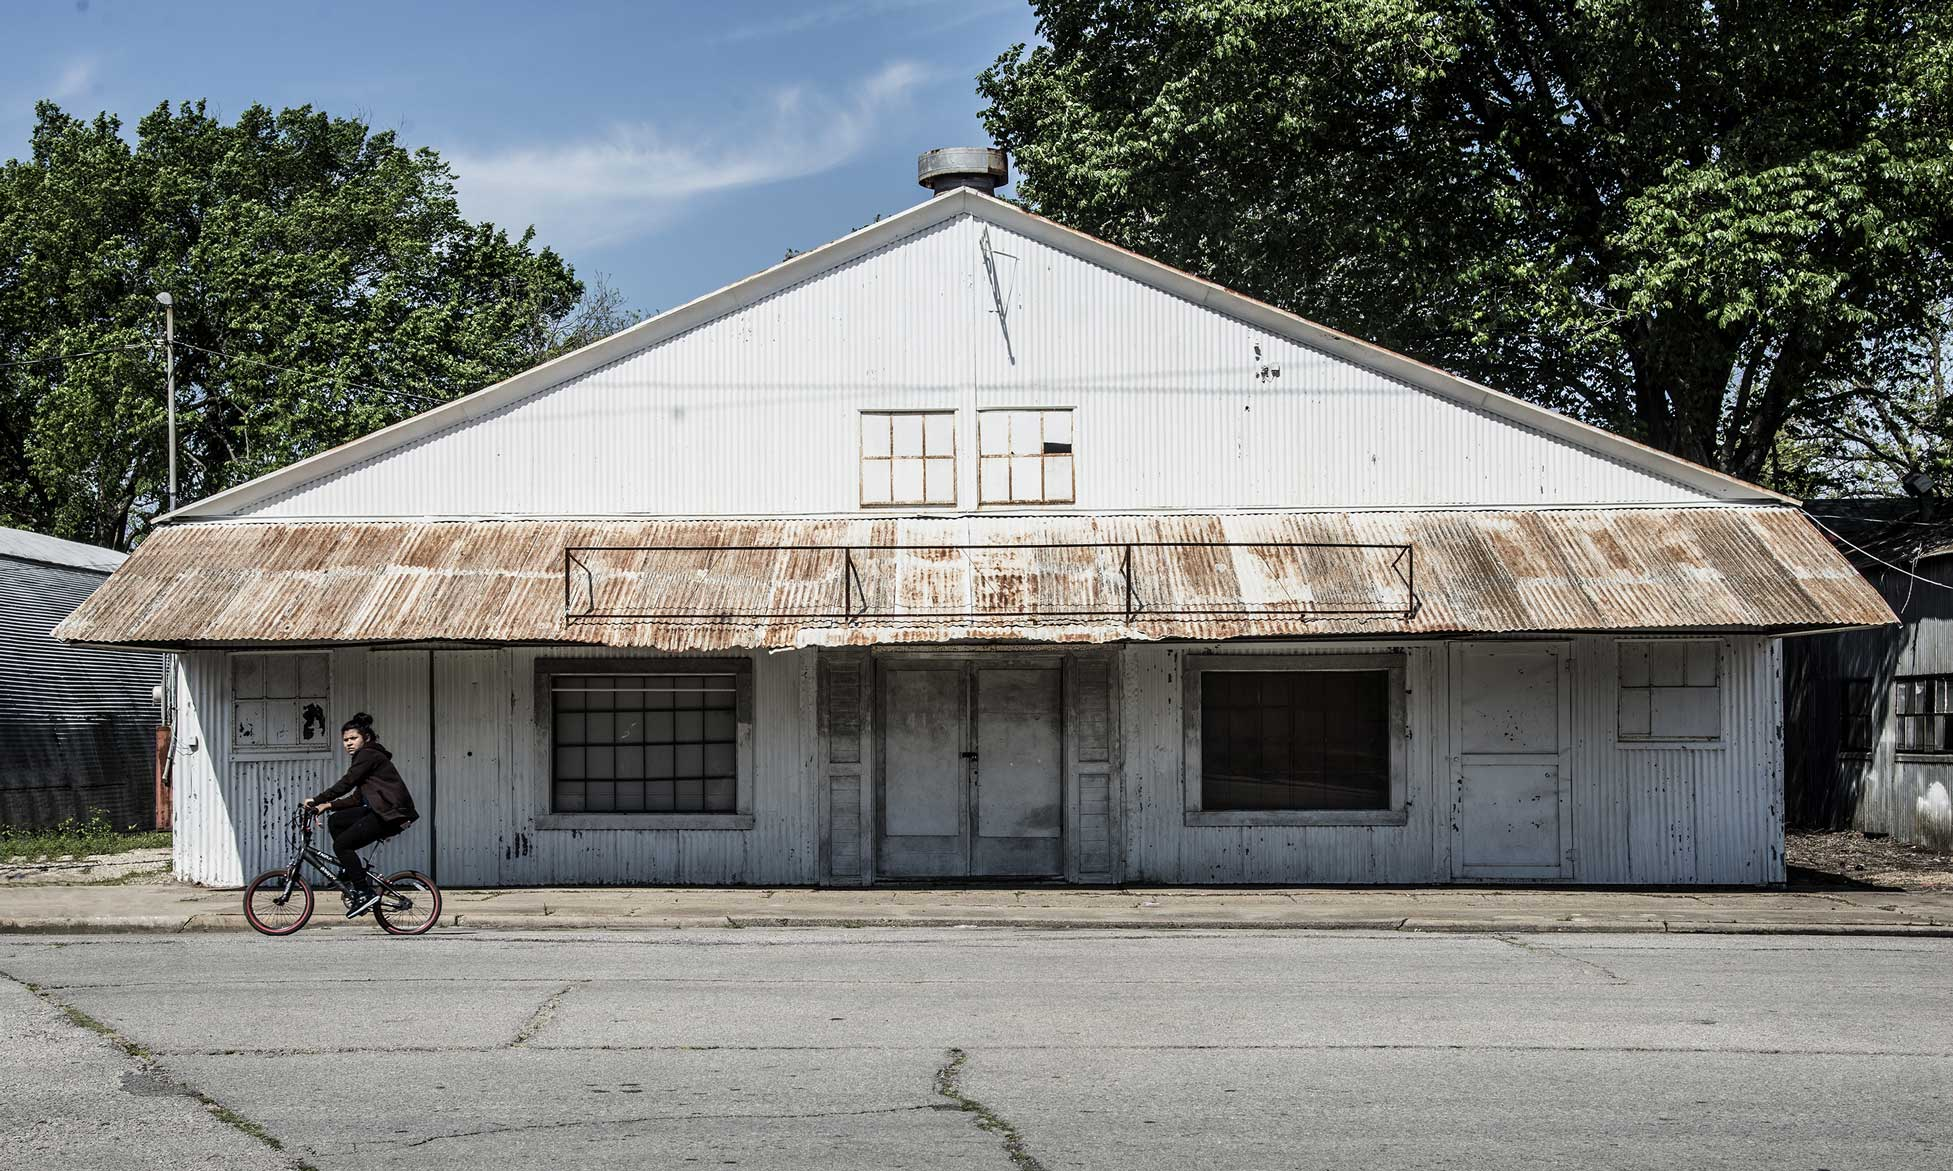 14-a-Far-Fading-West,-Woman-on-Bike-(Bryan,-Texas),-2018